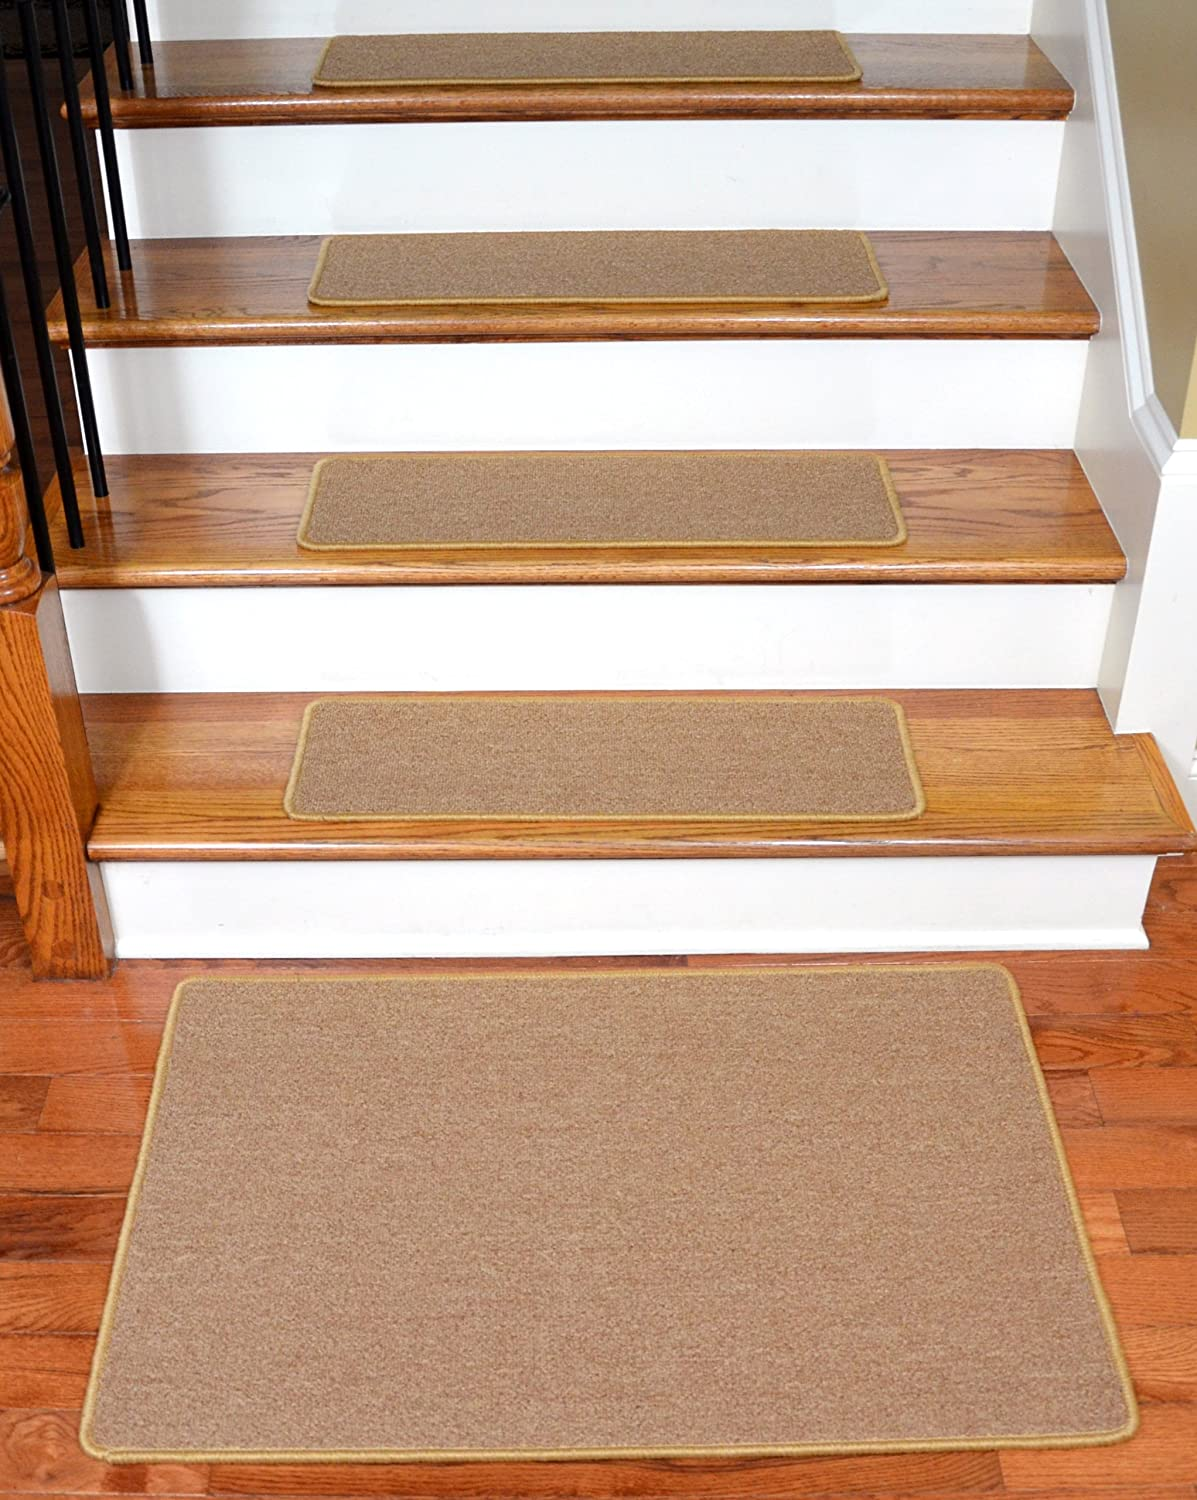 Dean Serged DIY Carpet Stair Treads 27 x 9 - Golden Camel - Set of 13 Plus a Matching 2' x 3' Landing Mat Dean Flooring Company ST-081012GCWM